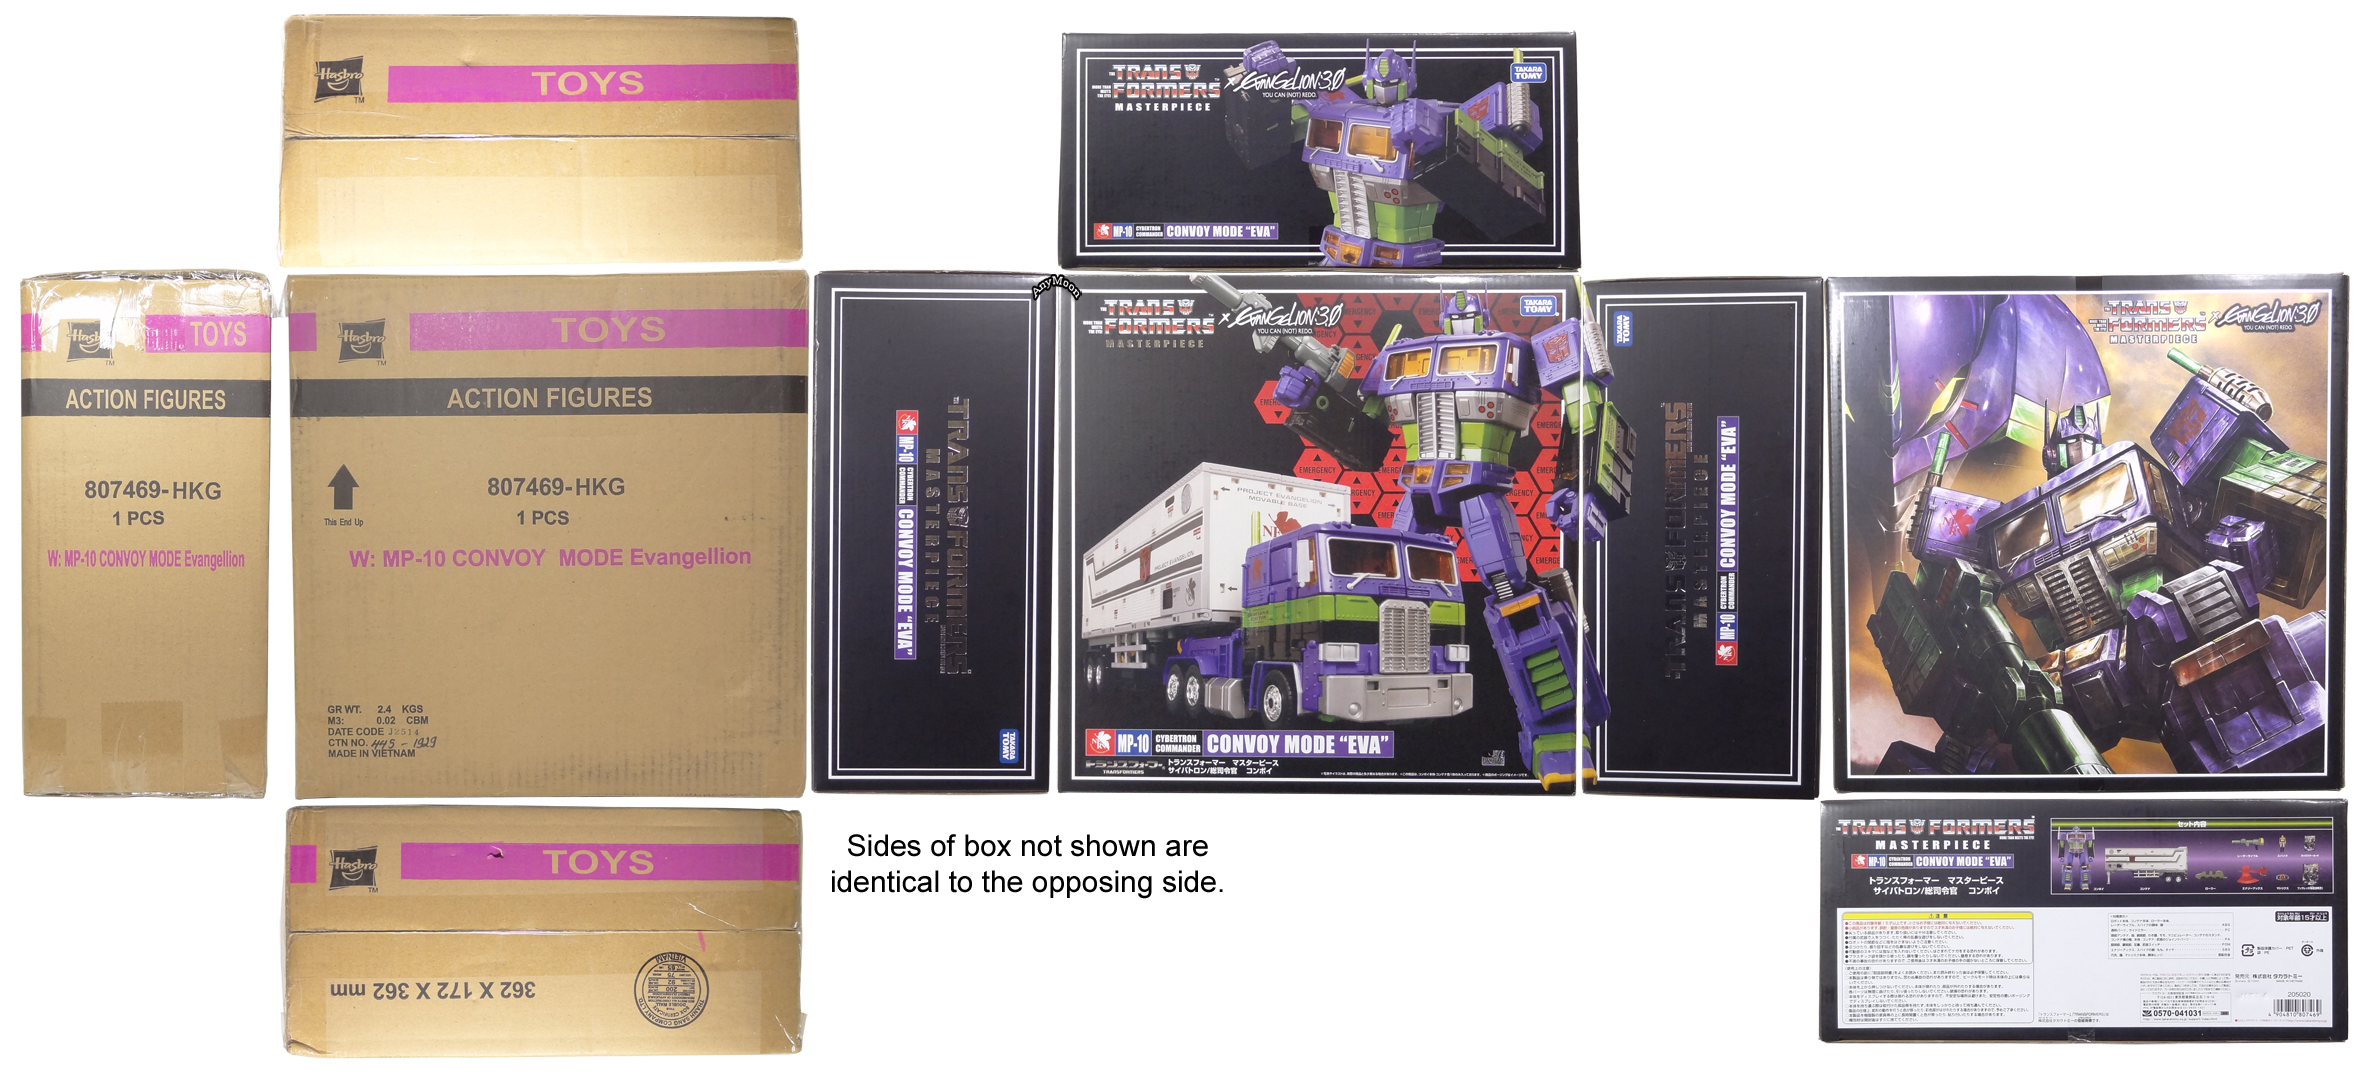 Scorched Earth Toys Takaratomy Hasbro Masterpiece Convoy Optimus Transformers Mp 10 Prime Packaging Extras 4 5 Takara Standard 45 Gift Set You Can Buy With A Trailer Or Some Of The